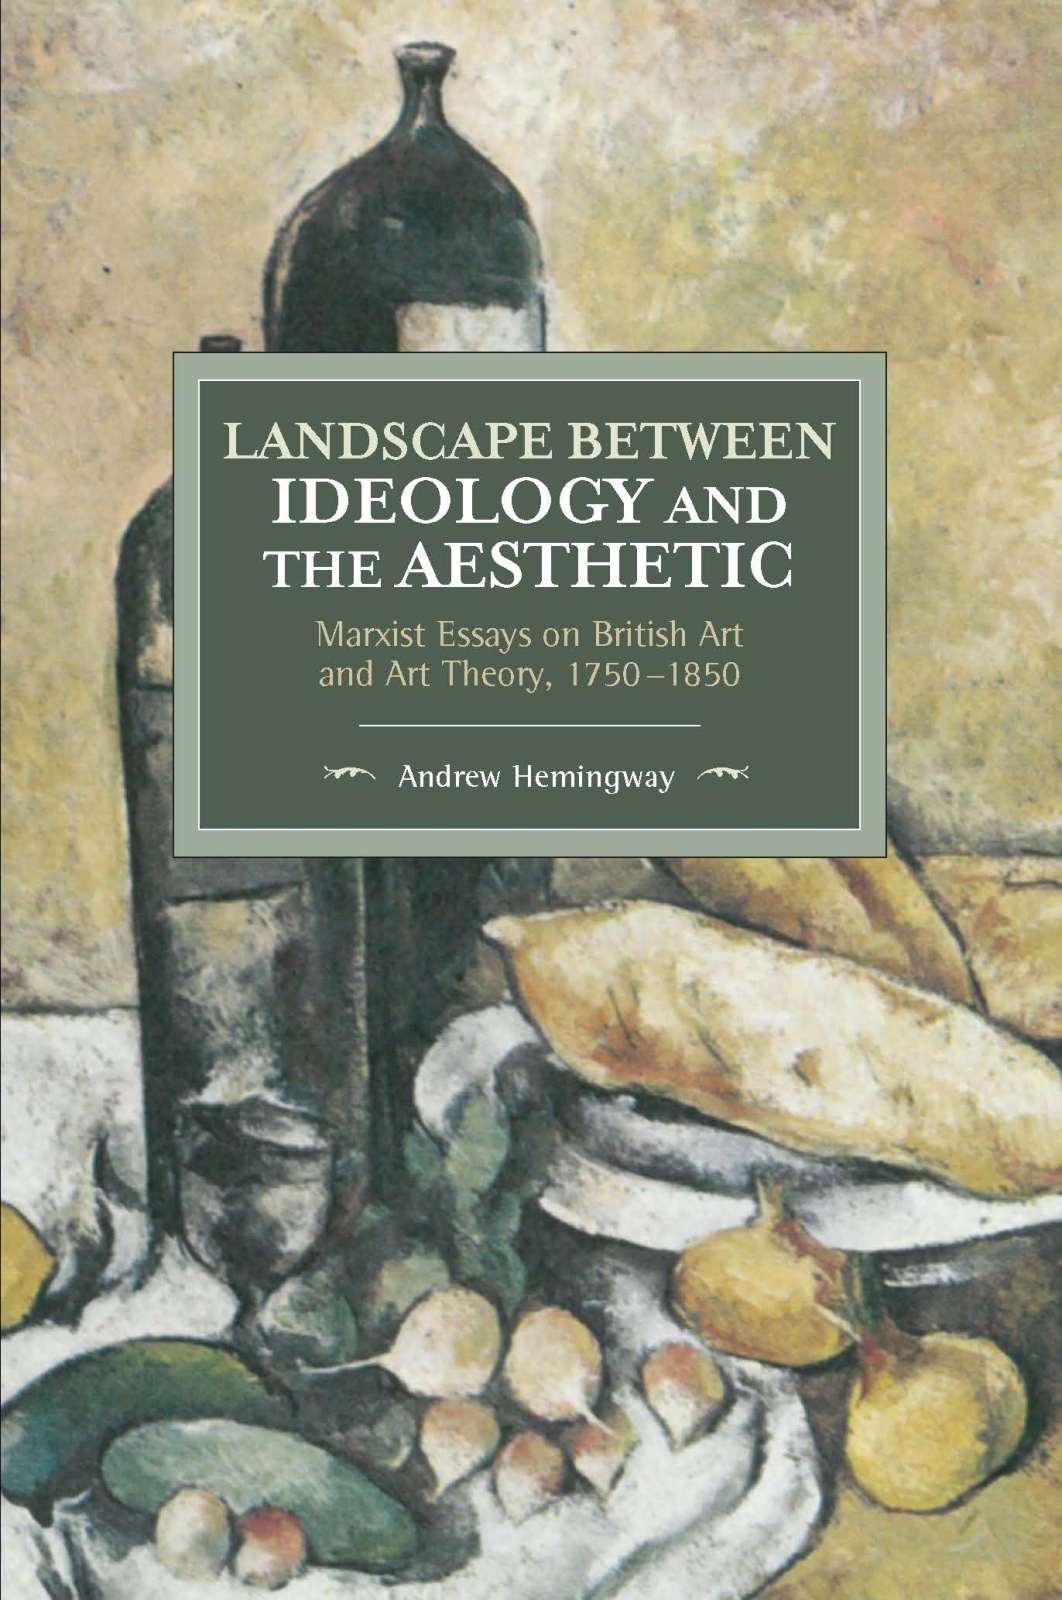 Landscape Between Ideology and the Aesthetic Marxist Essays on British Art and Art Theory, 1750-1850